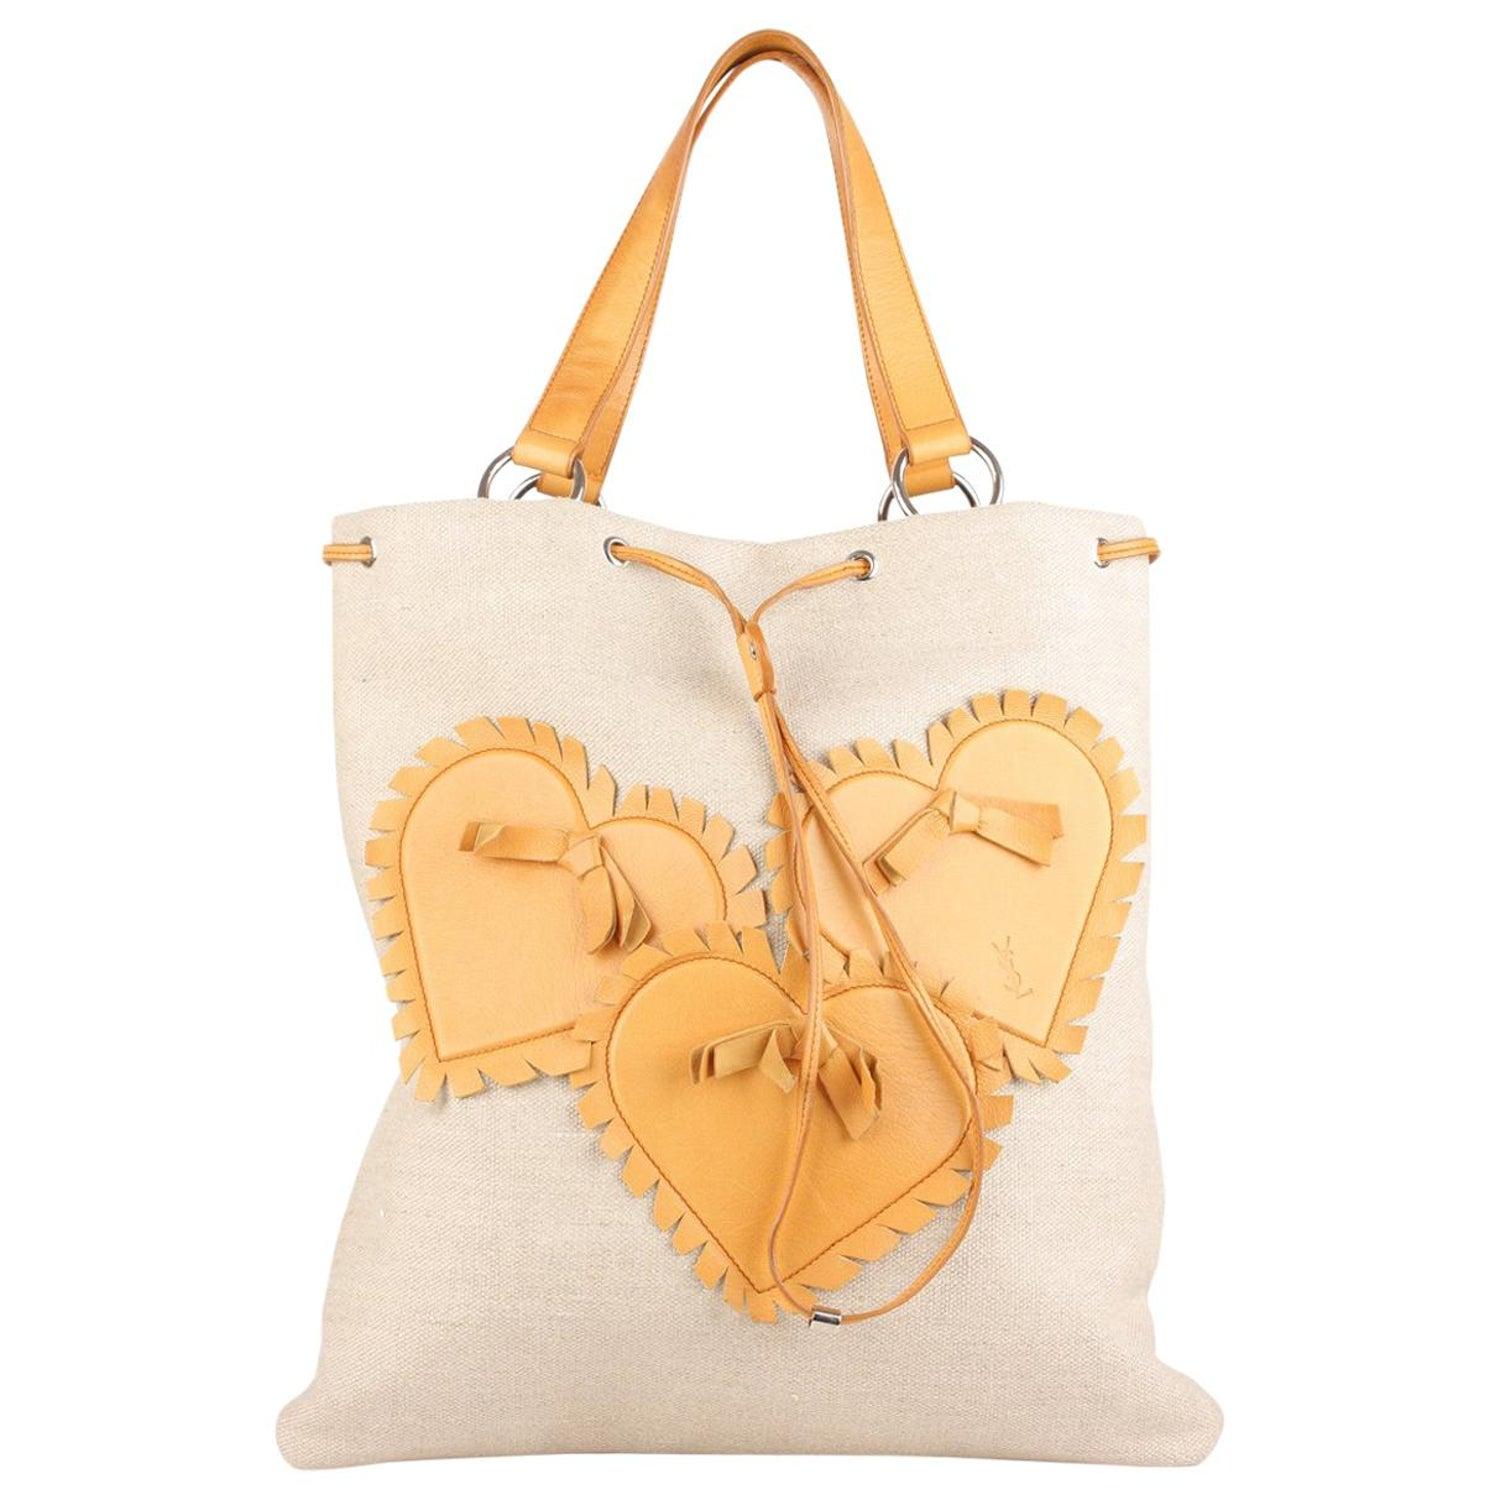 96b6e857746cb Yves Saint Laurent Tan Canvas and Leather Hearts Tote Bag at 1stdibs